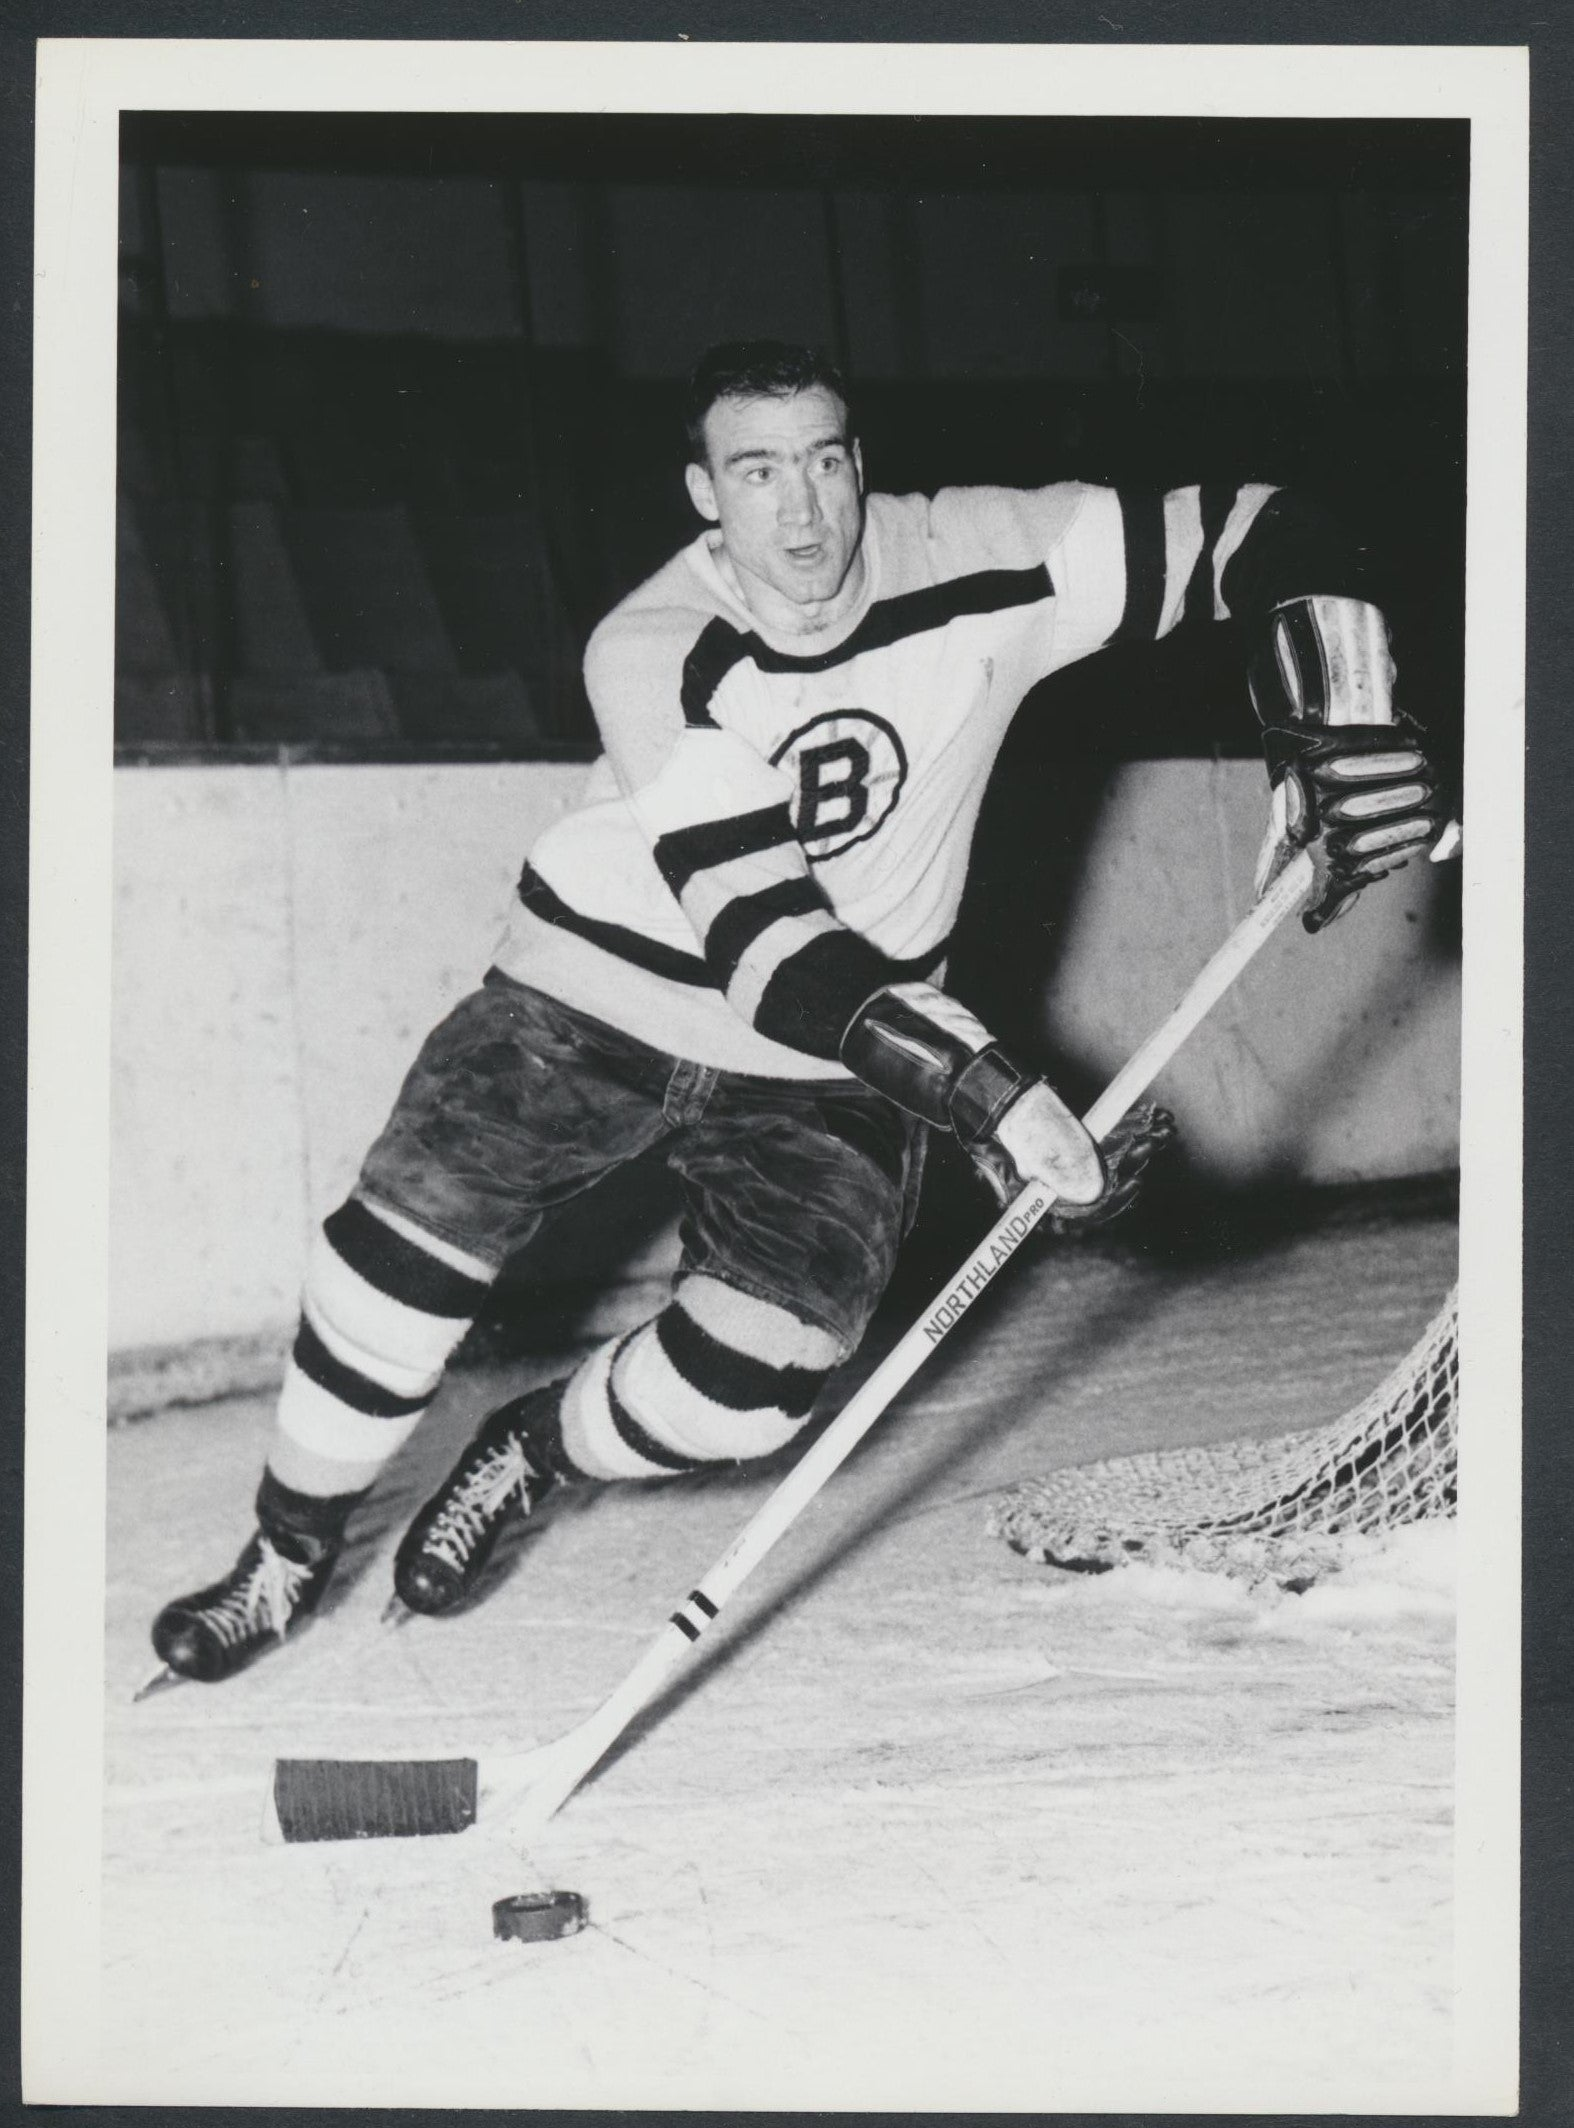 Original Jerry Toppazzini -Boston Bruins   Hockey Press Photo 1963  Vintage NHL Hockey Pic  News Archives